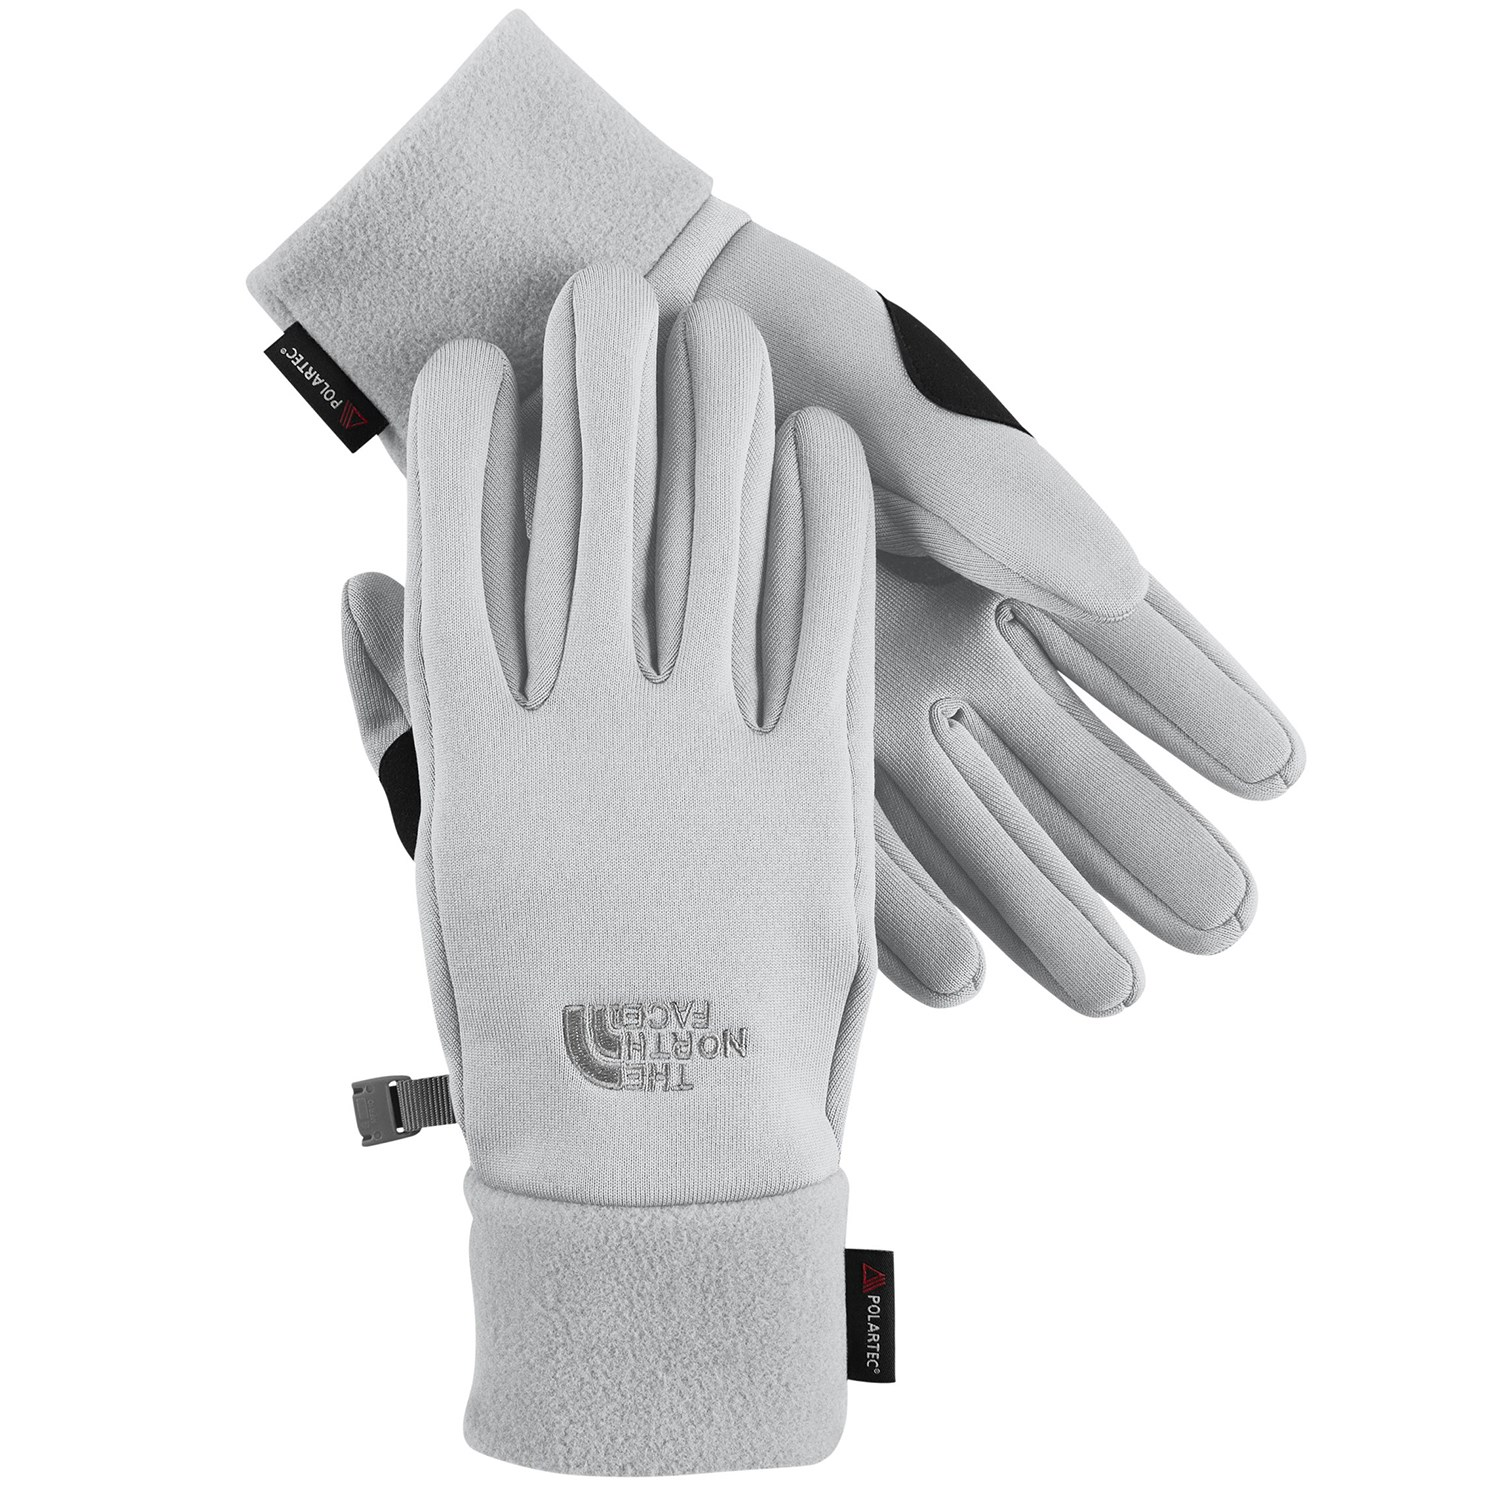 San Francisco outlet te koop 100% origineel The North Face Powerstretch Gloves - Women's